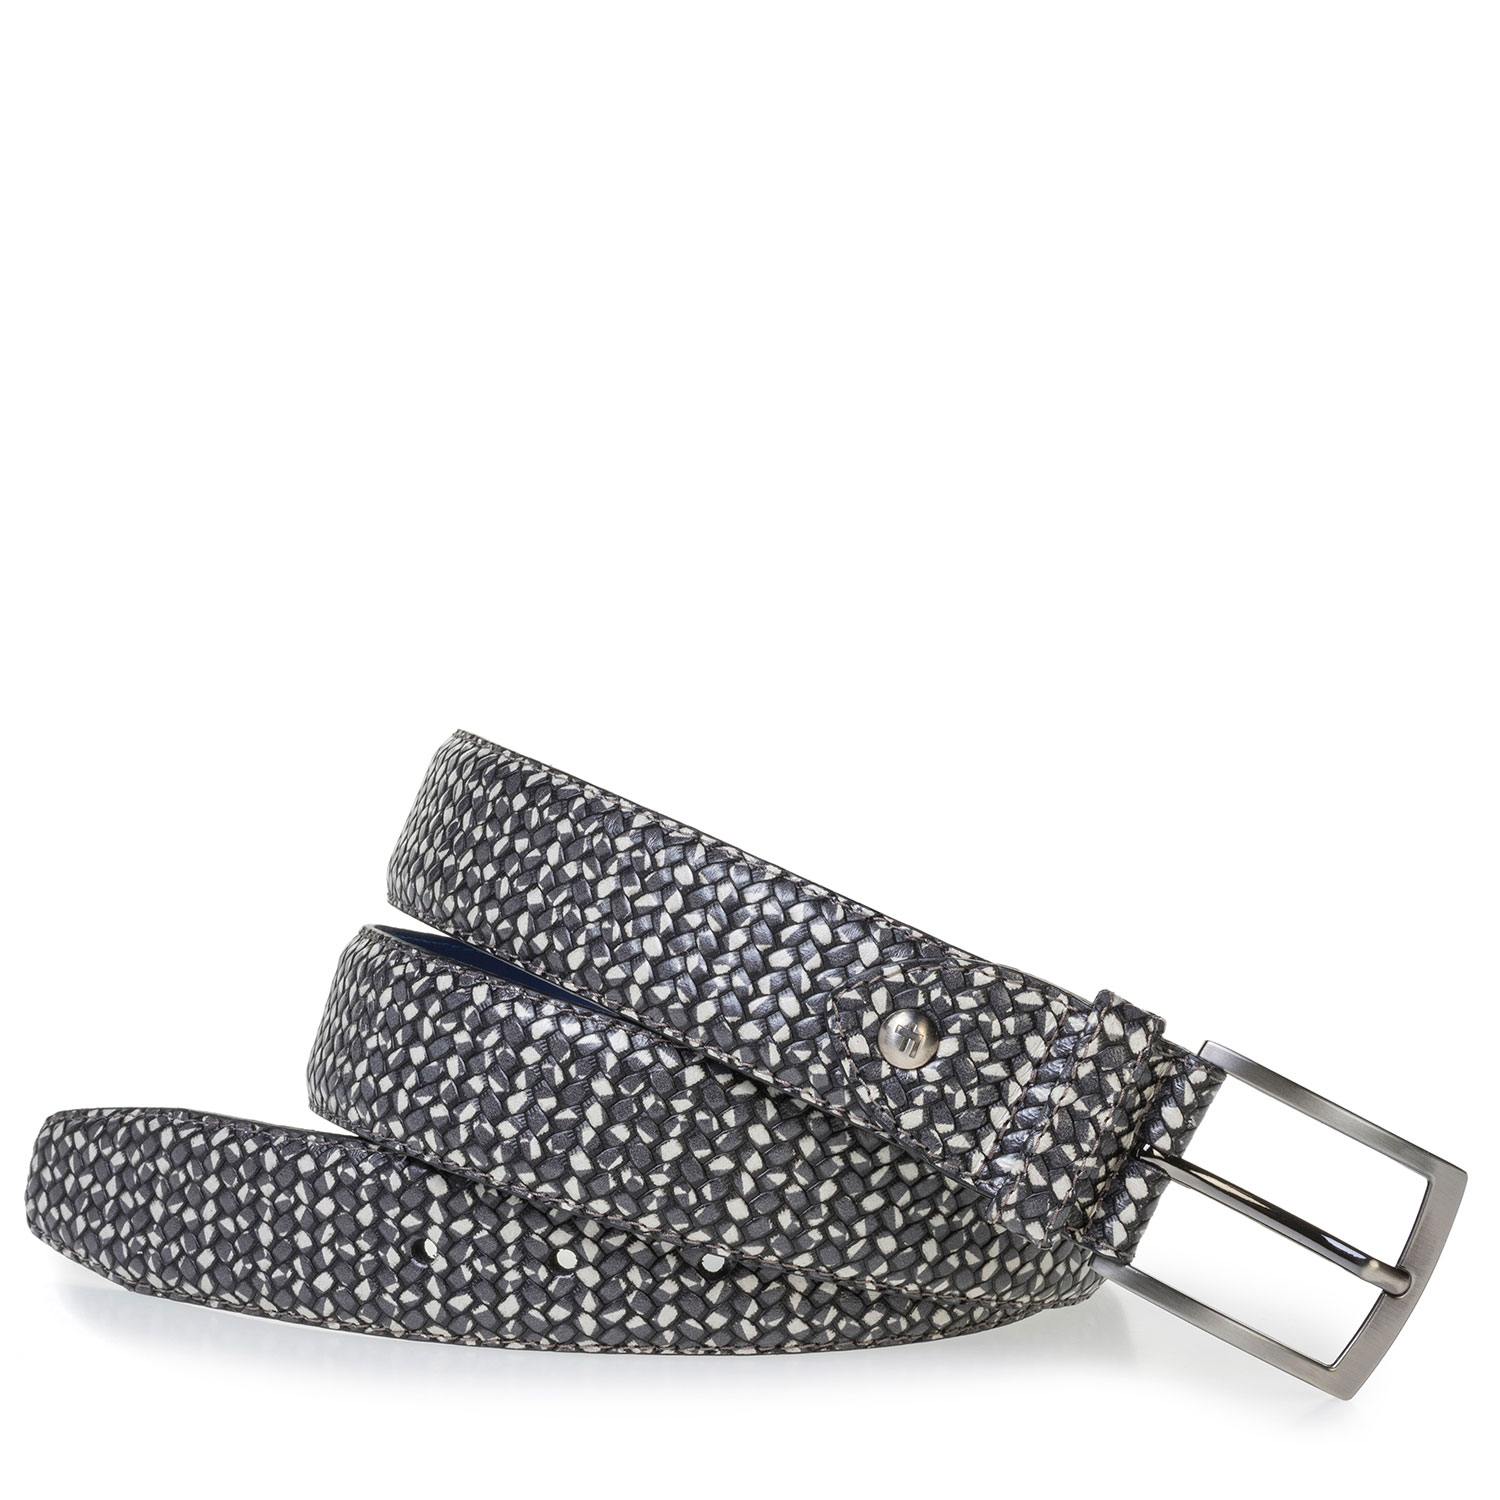 75200/79 - Dark grey leather belt with a white print